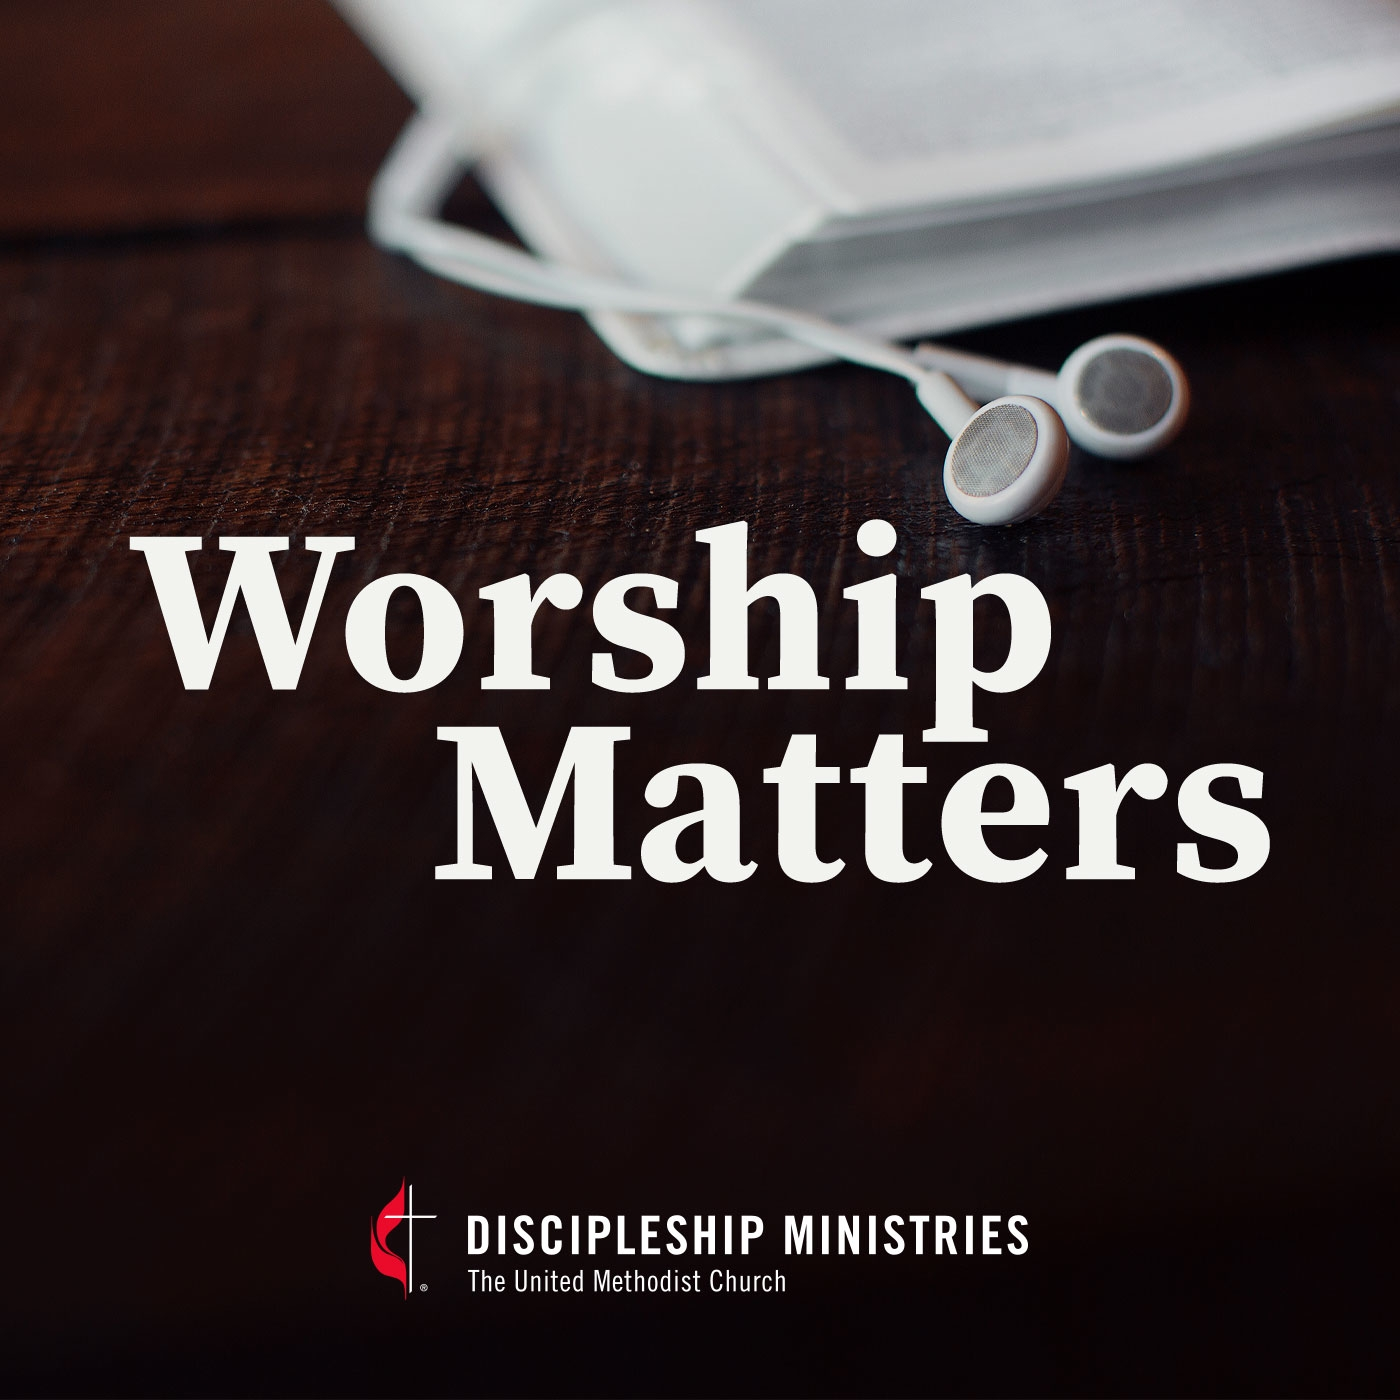 Discipleship Ministries | Worship Matters: Episode 01 - Epiphany  United Methodist Church Lectionary Preaching 2020